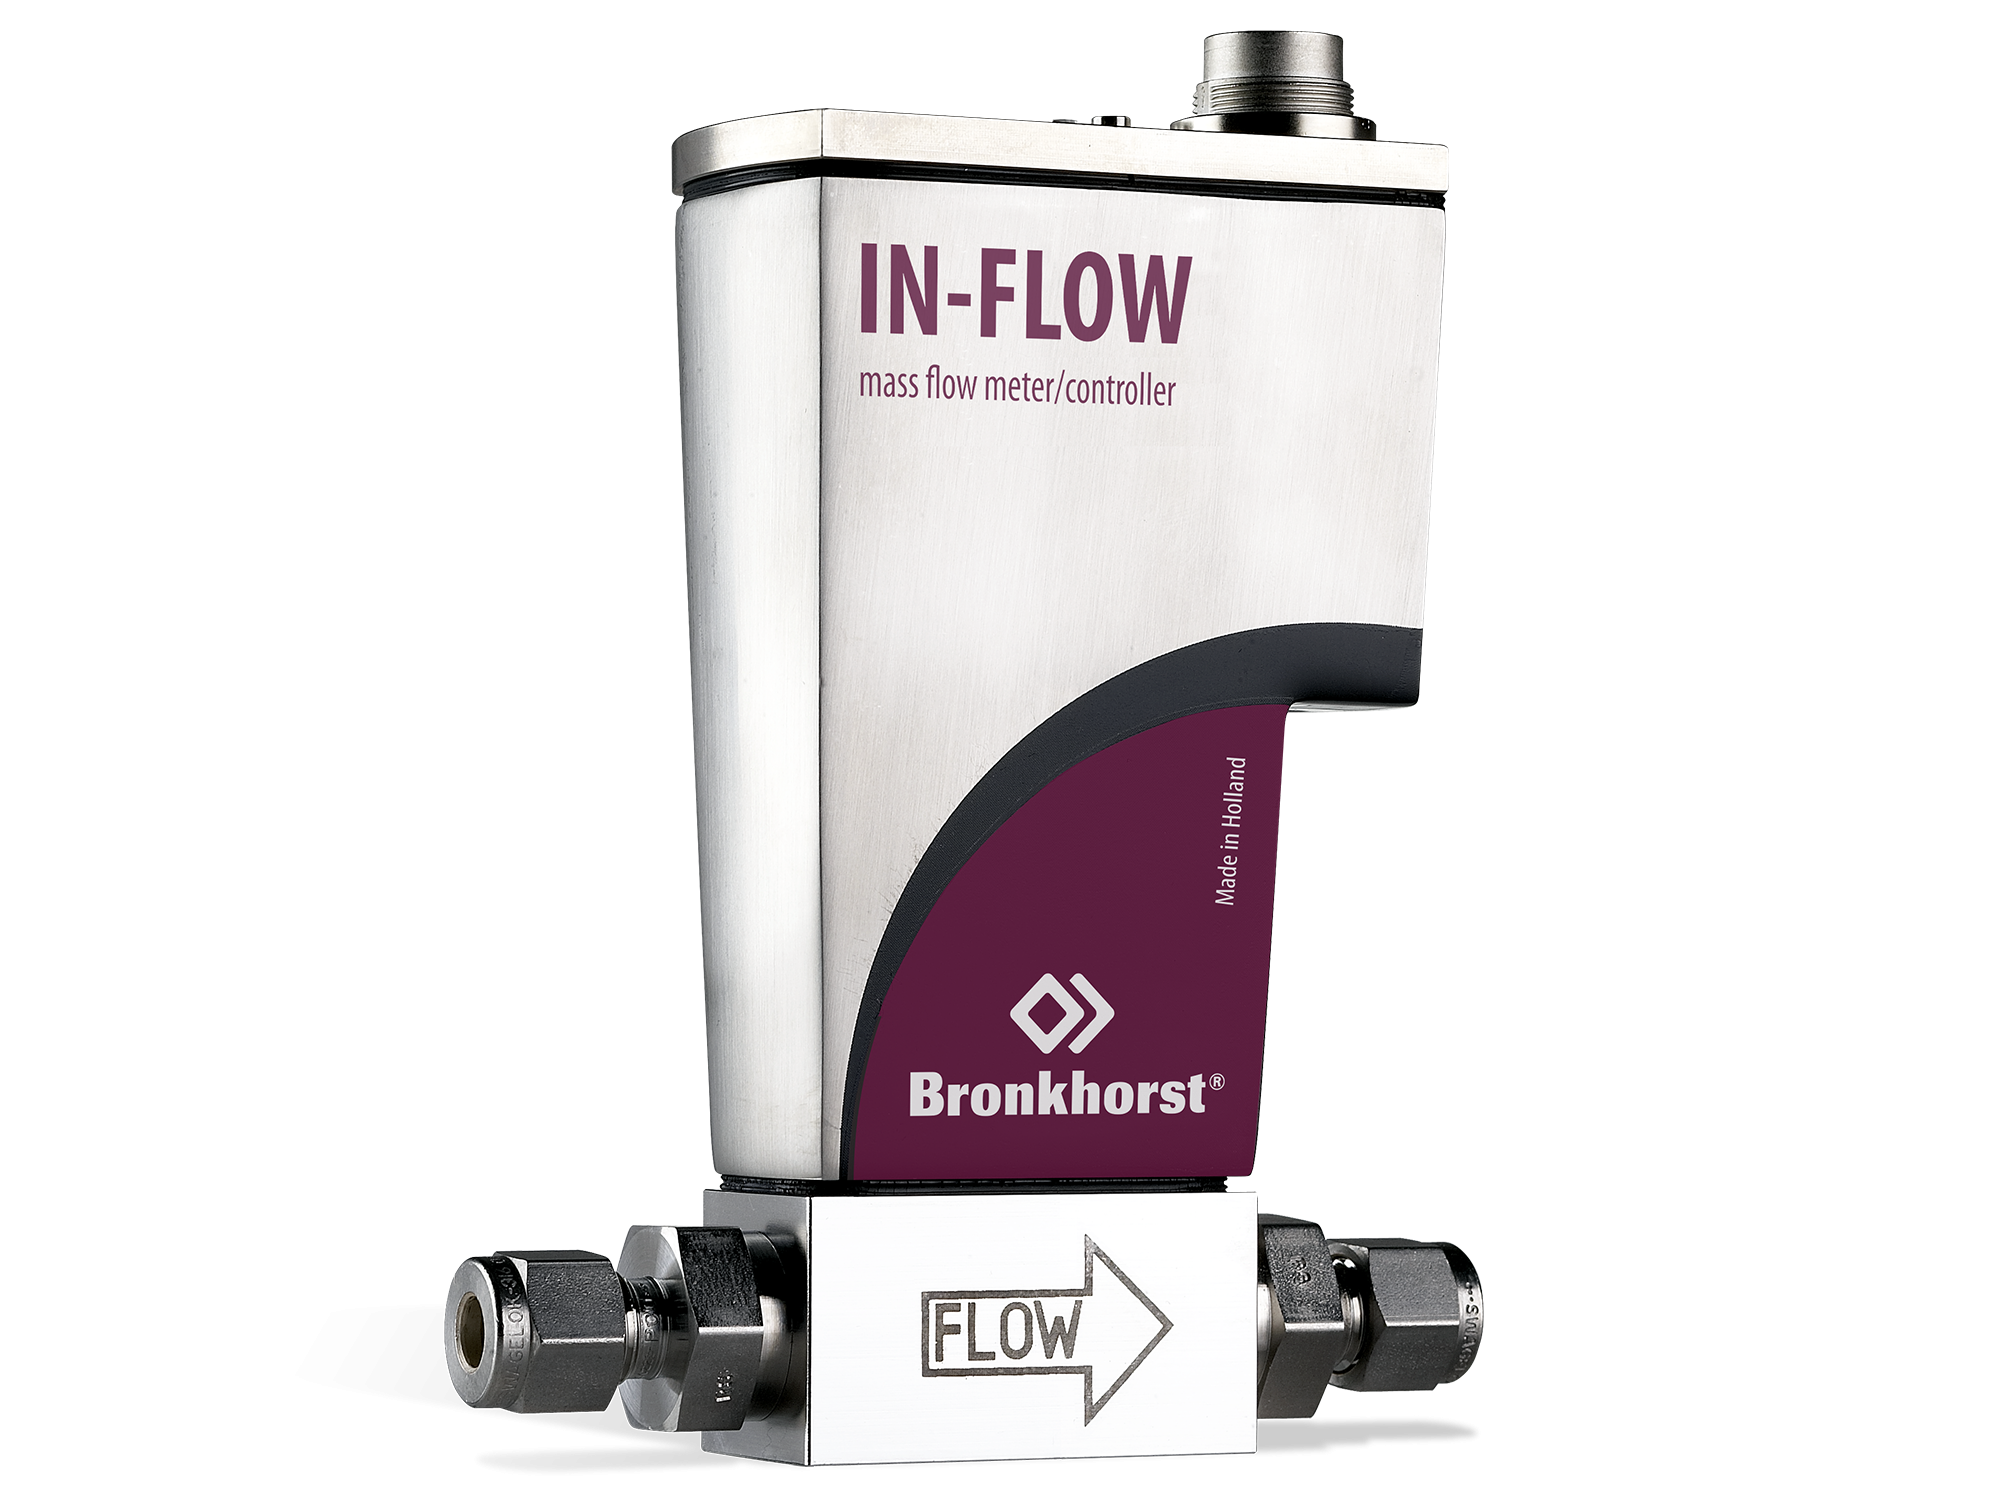 IN+FLOW masseflowmeter/-kontroller